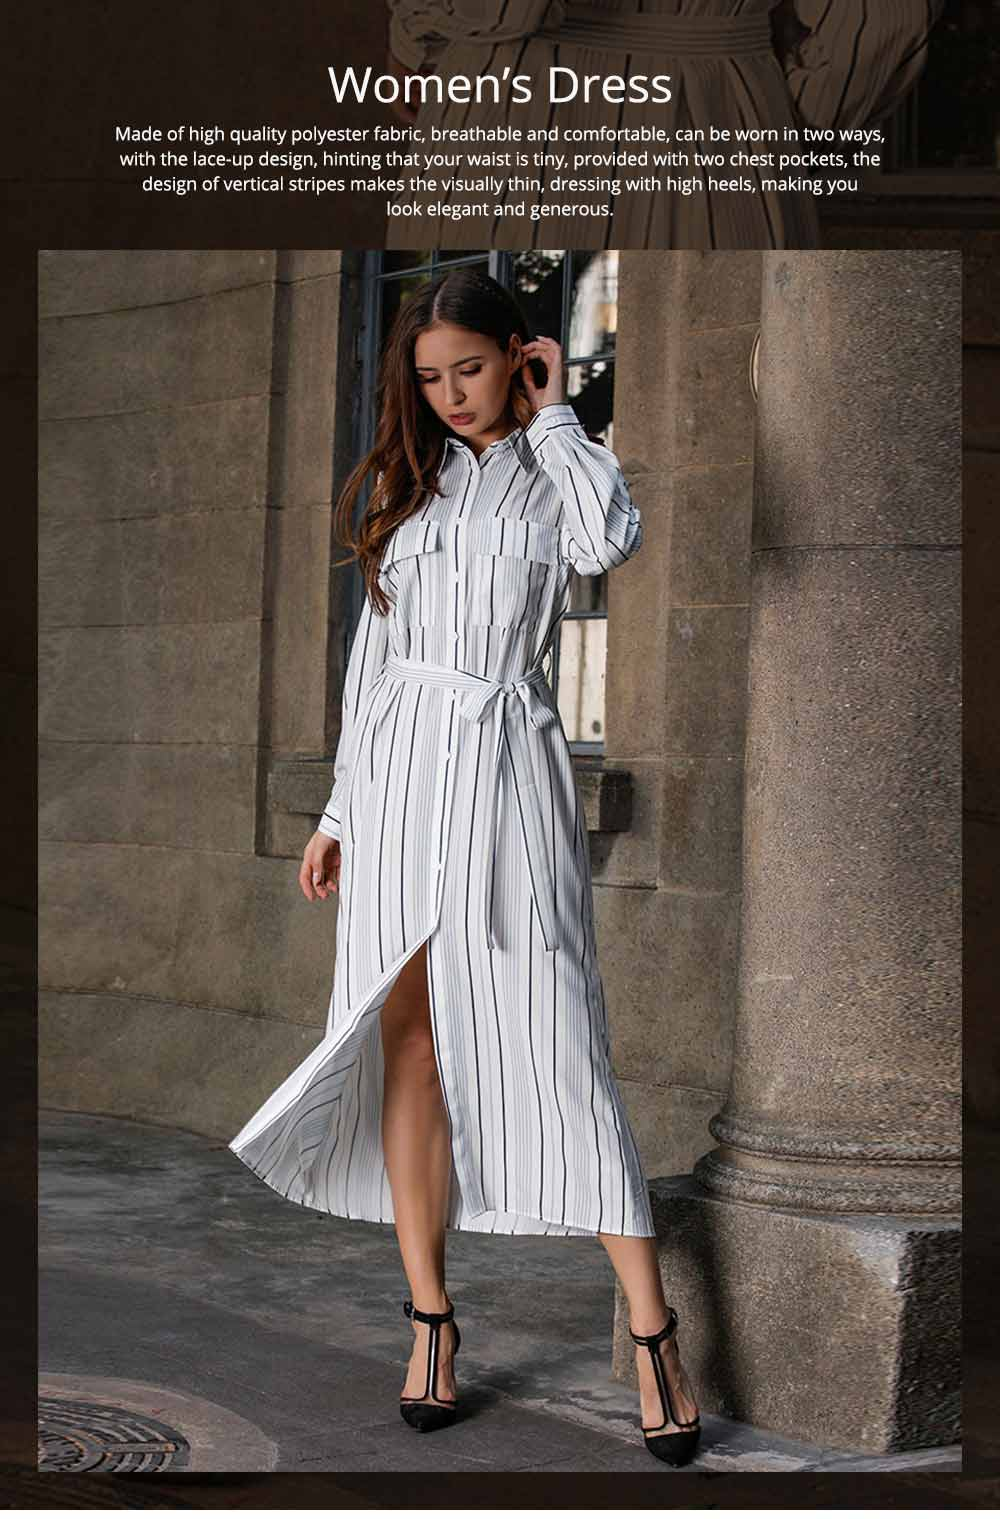 Spring Autumn Dress for Women, Long Sleeve Pocket Lace-up Long Dress, Fashion Stripe Casual A-line Lattice Skirt 2019 0